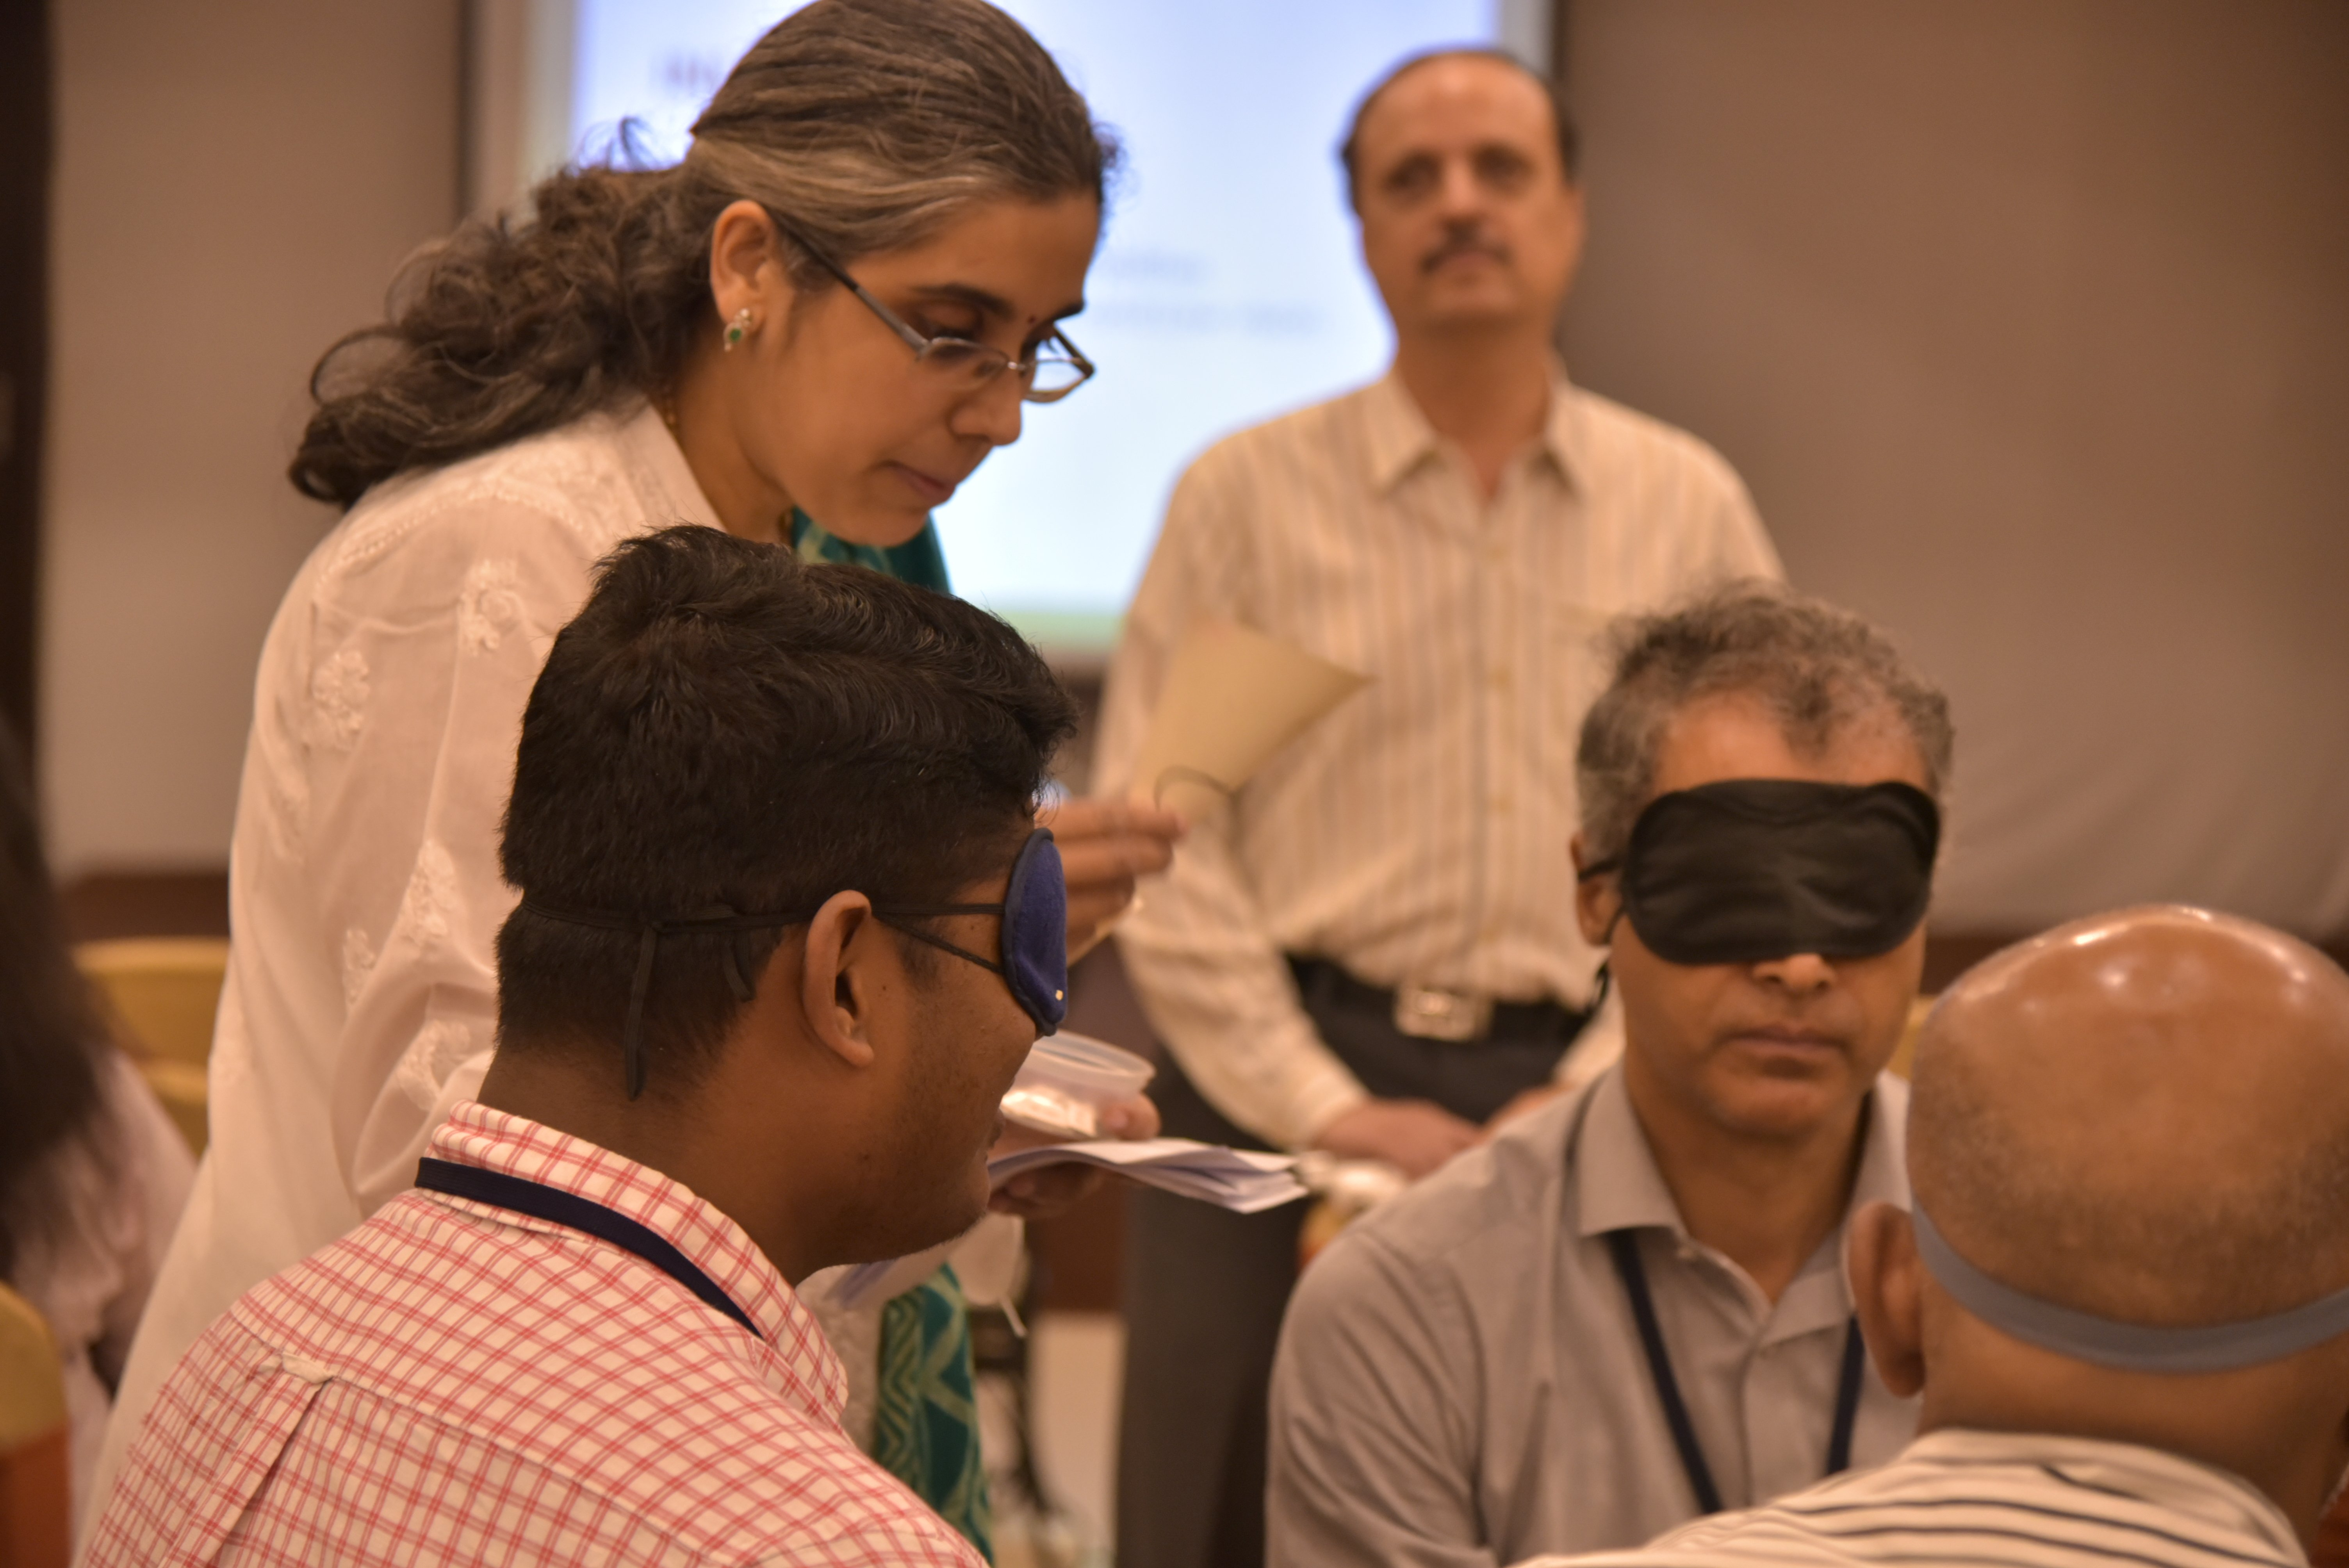 Some men are sitting and wearing eye masks. A woman is standing and holding a piece of paper. One more man is visible in the background.